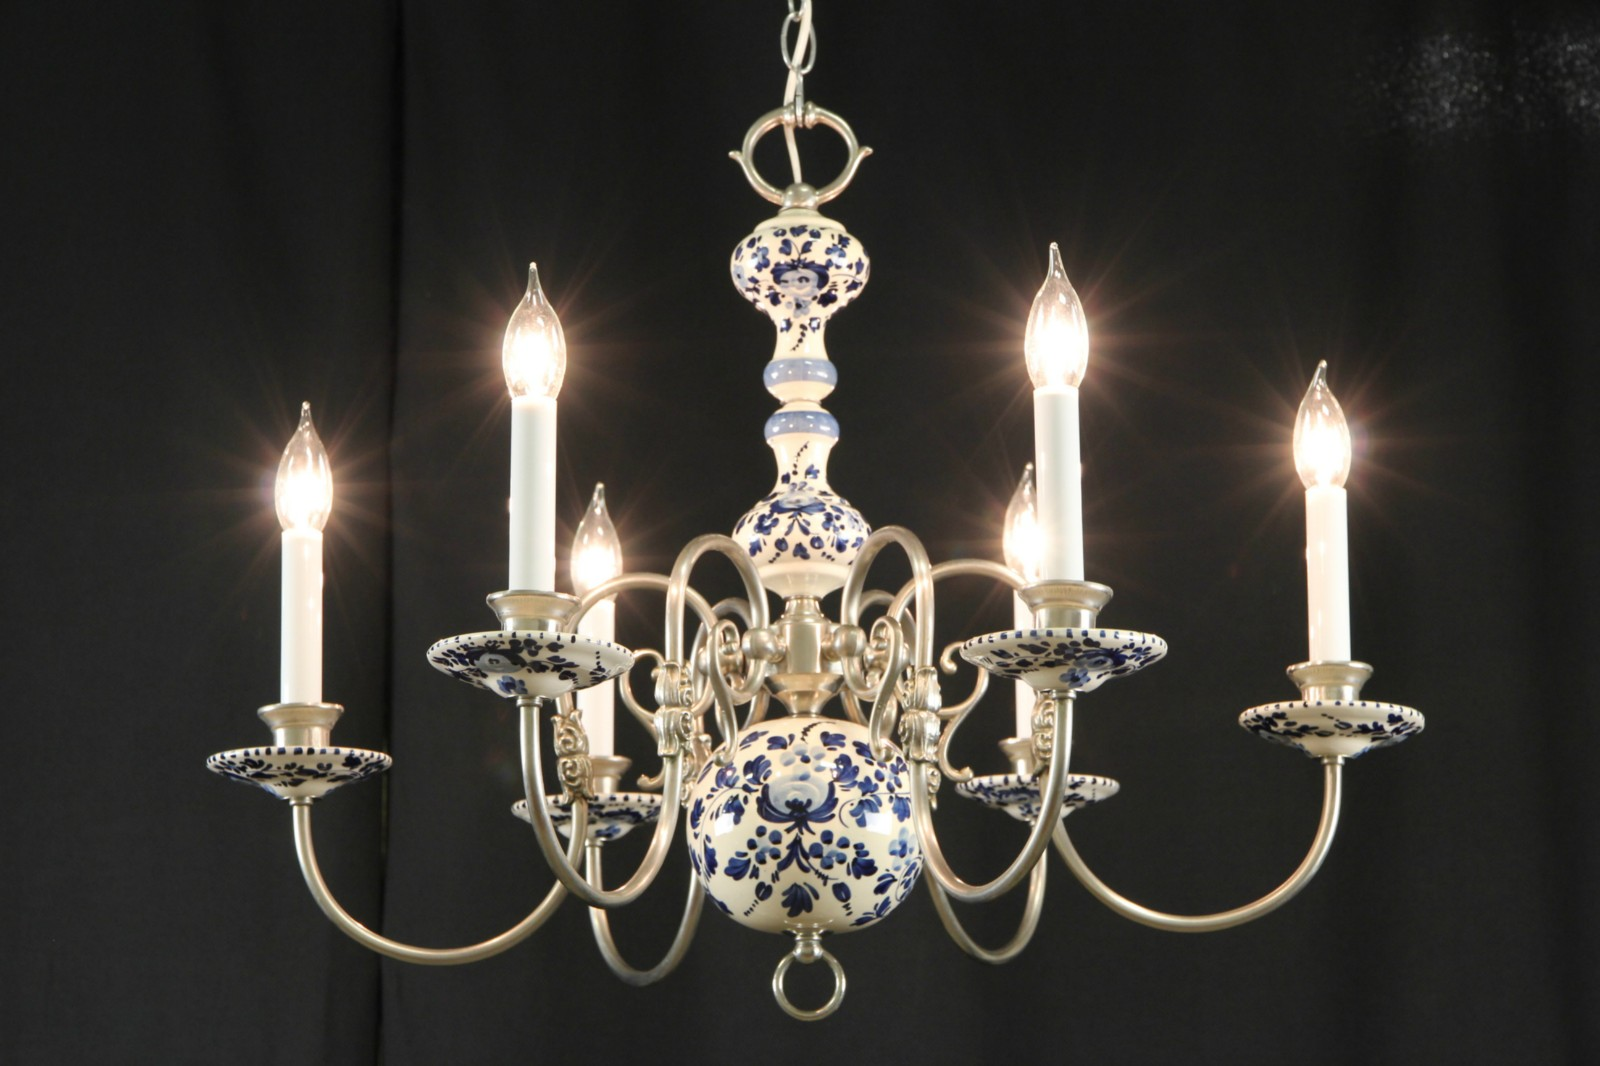 Sold blue delft china pewter vintage chandelier harp gallery blue delft china pewter vintage chandelier aloadofball Gallery